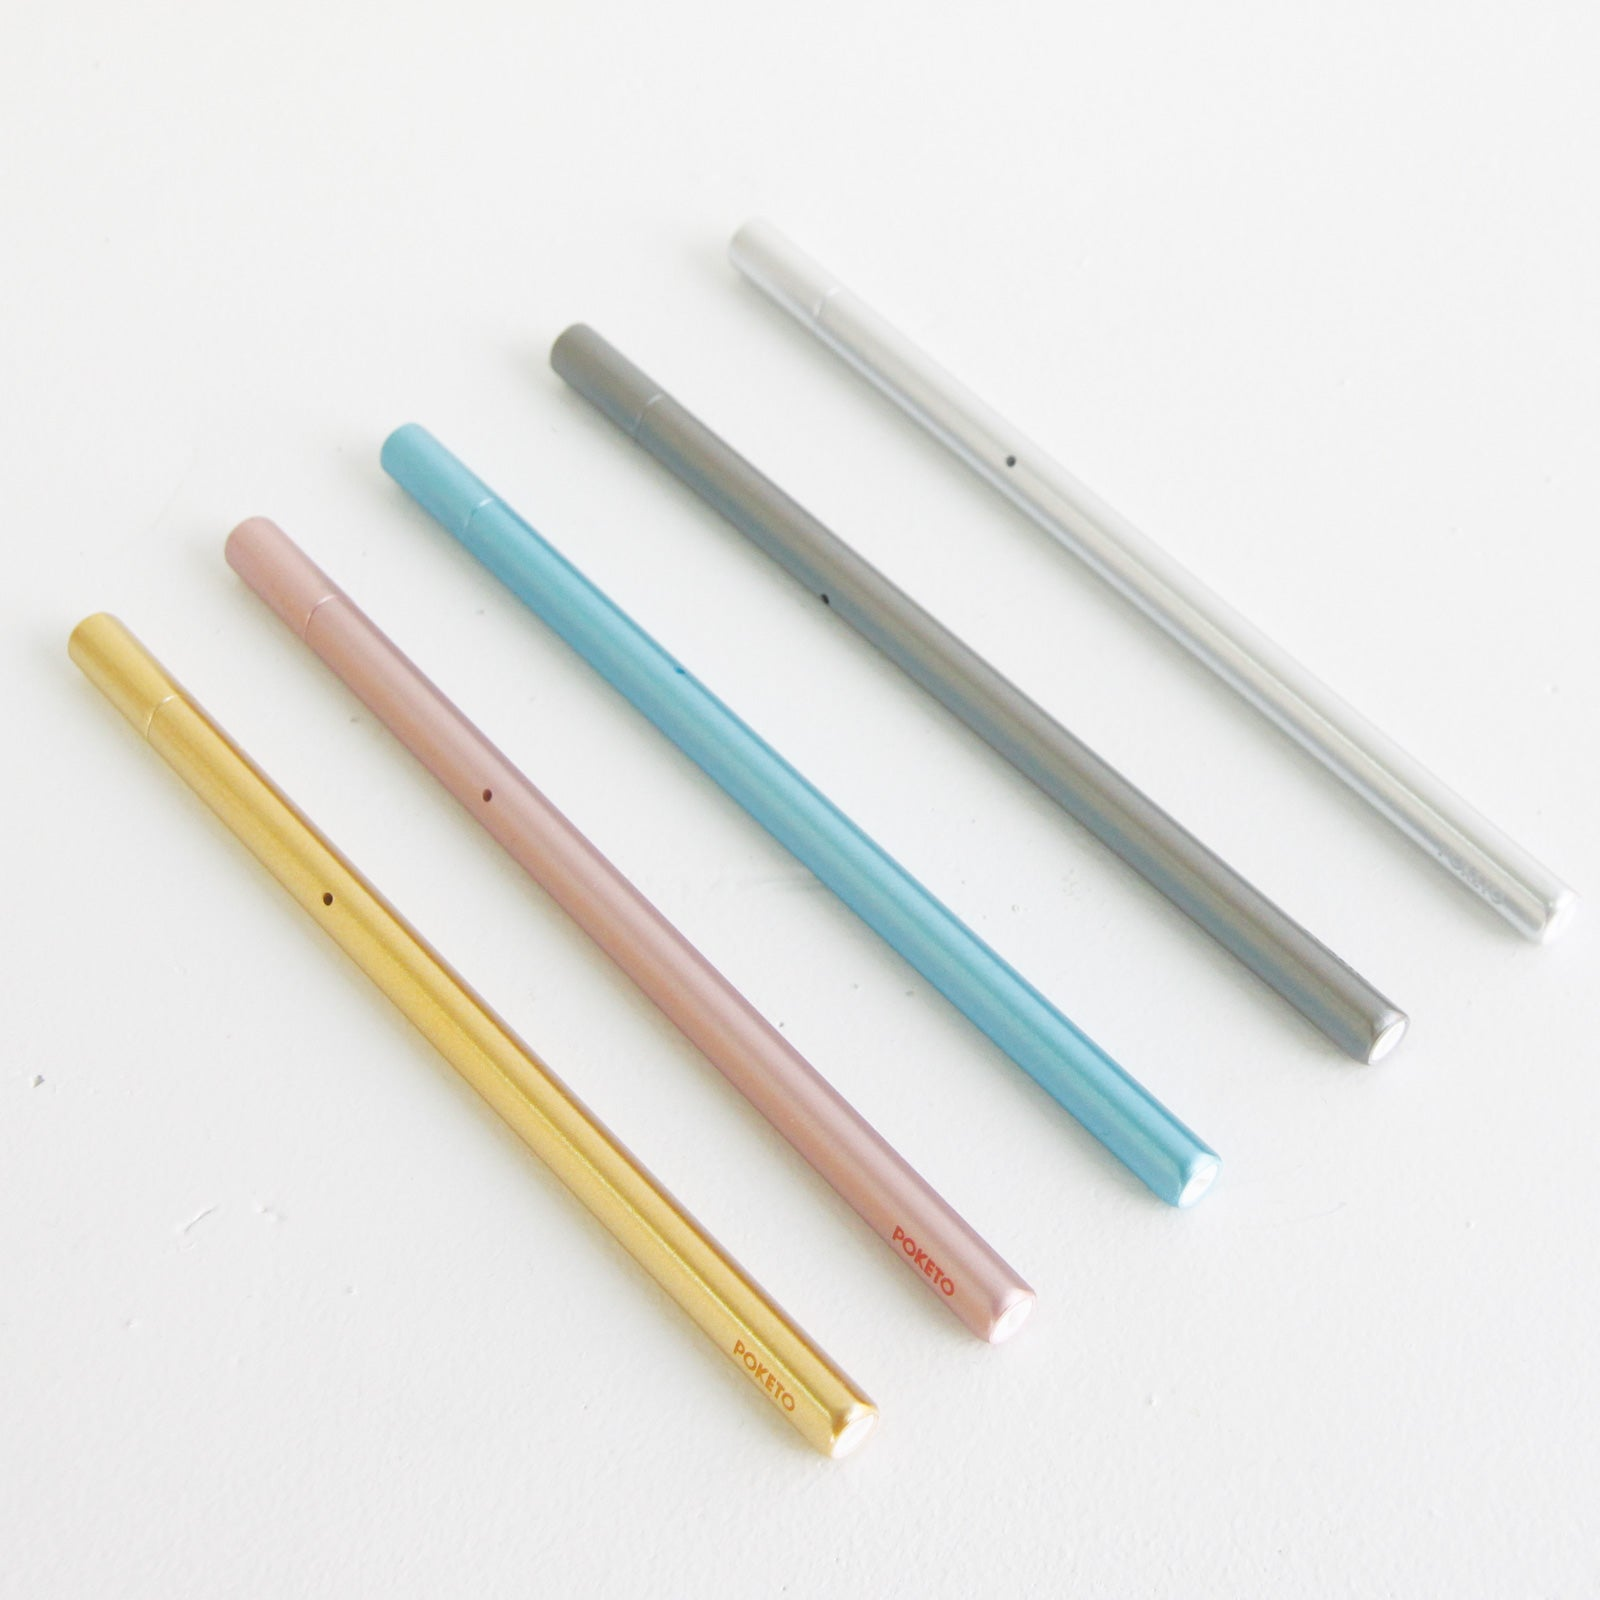 Pirsim Pens - Pack of Five | Poketo | Los Angeles, CA at Sustain - Gallery and Shop - Chicago, IL